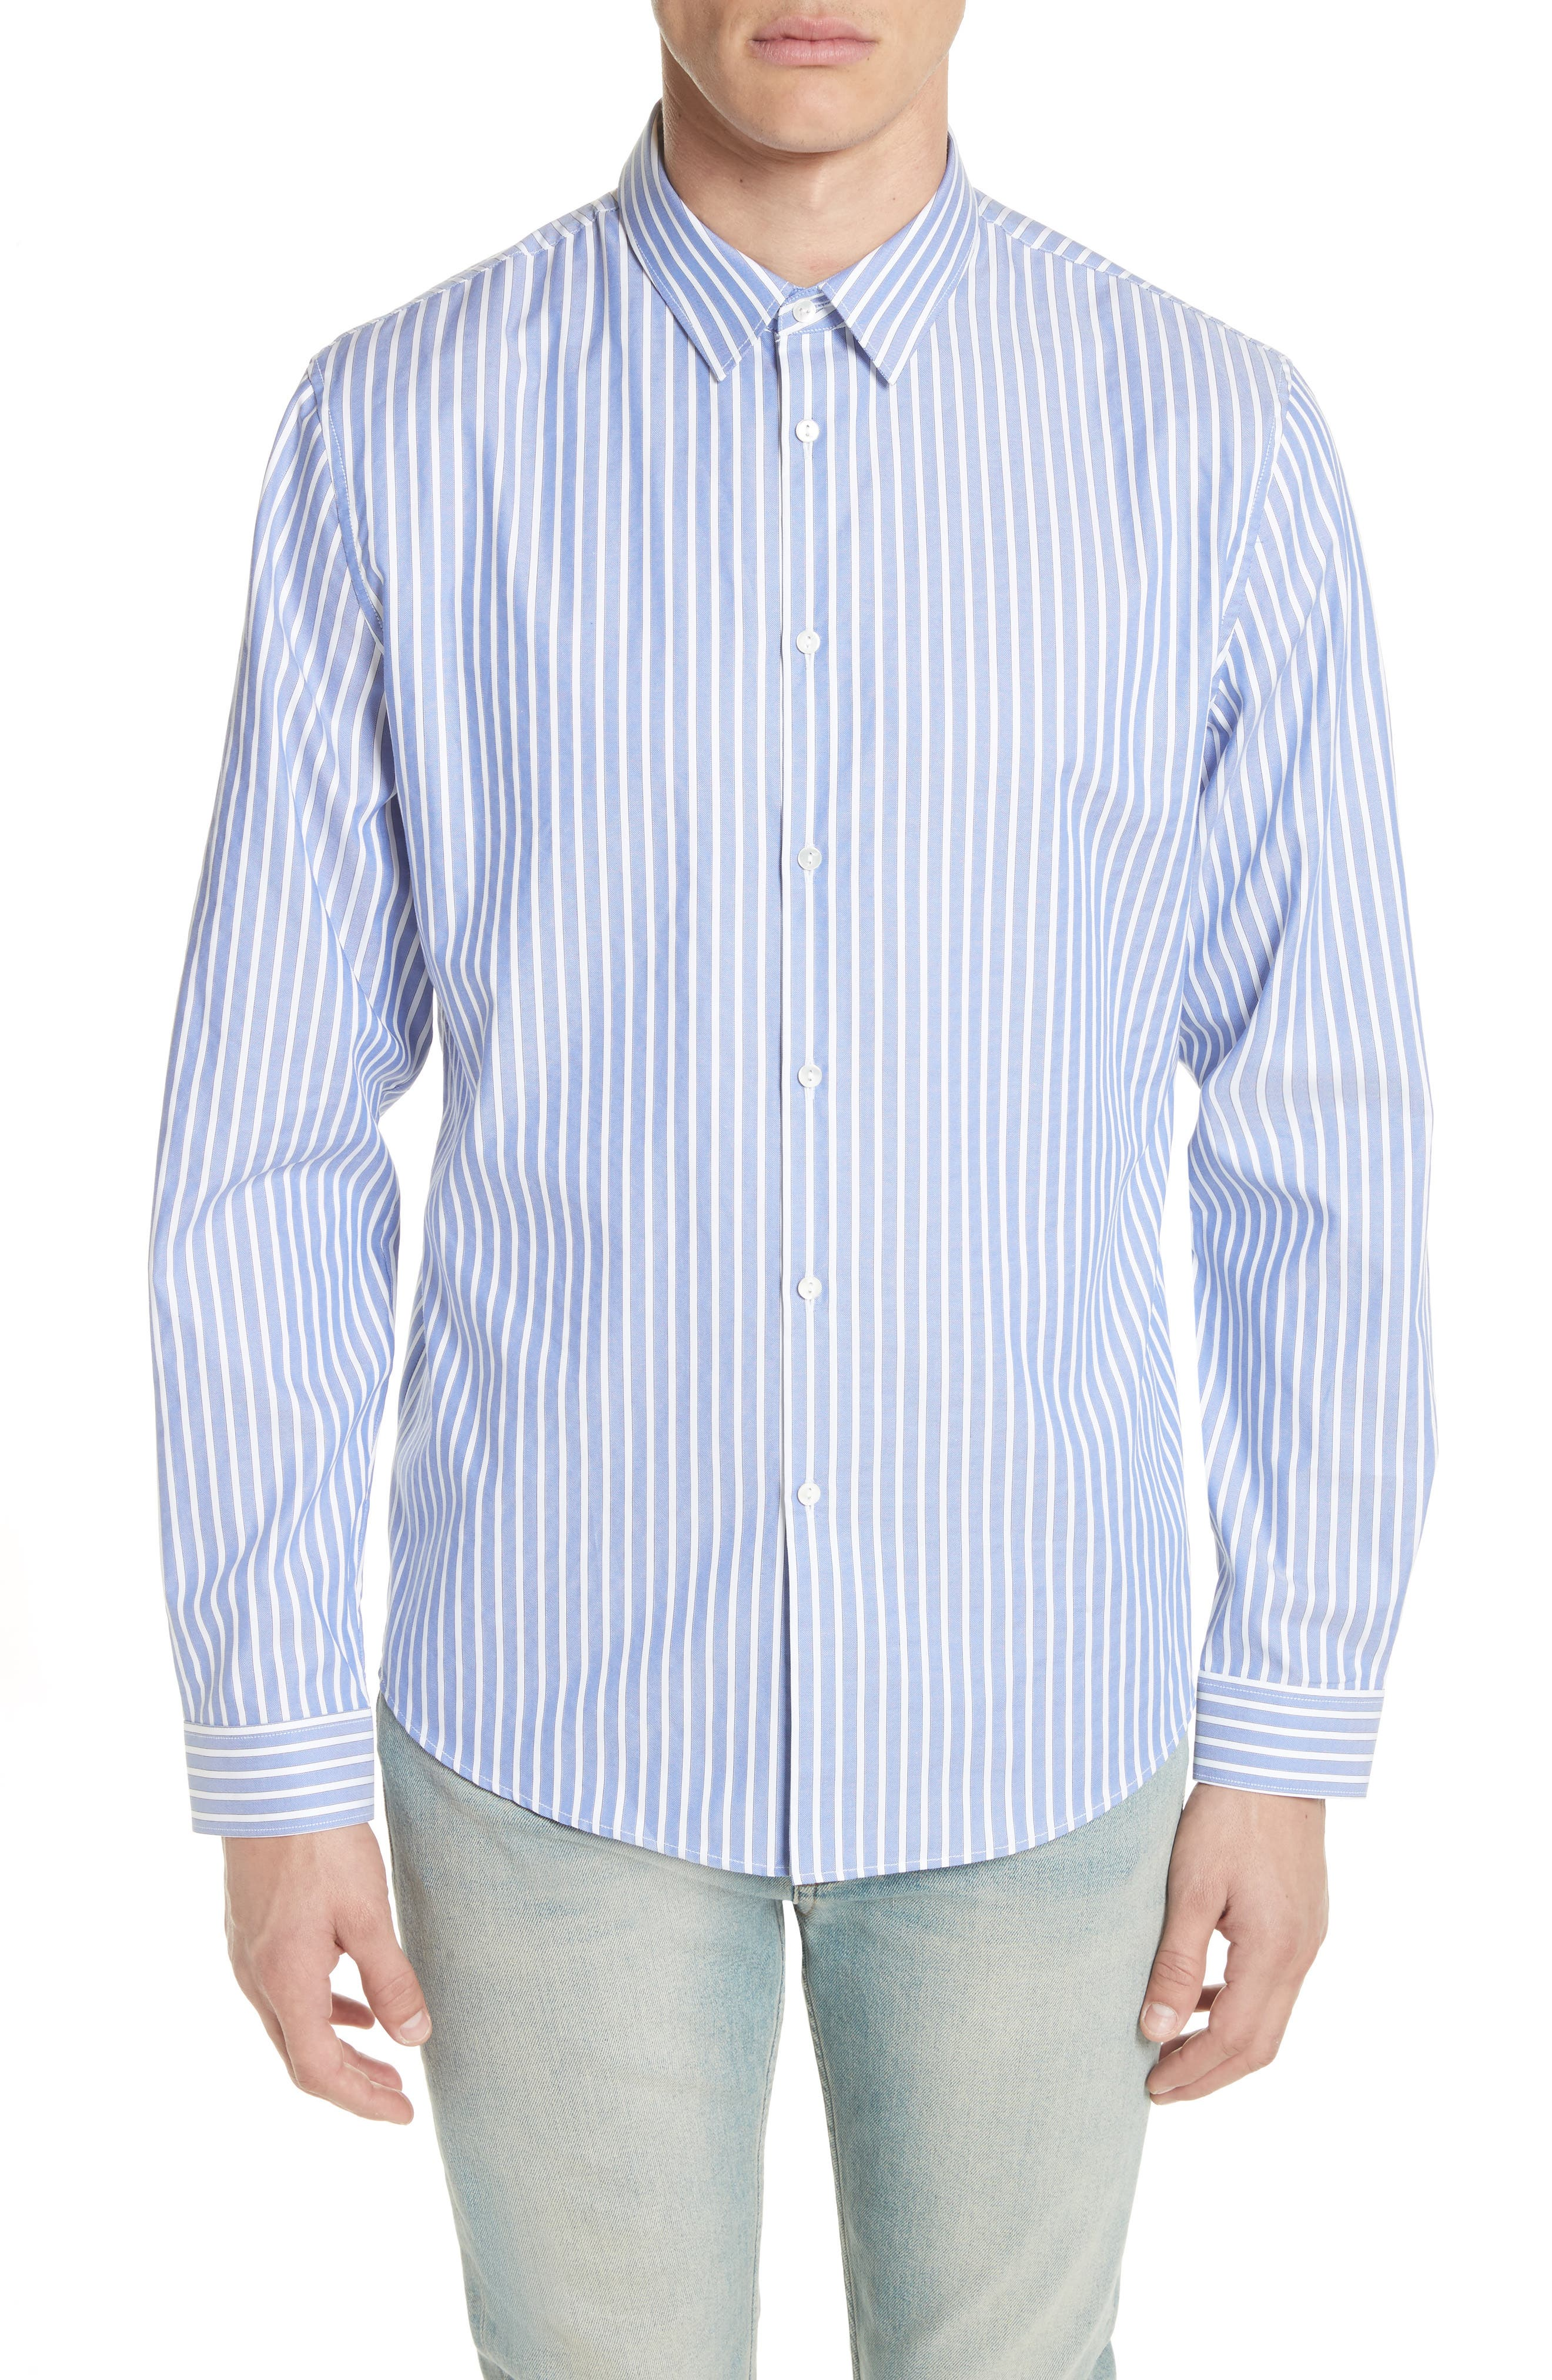 Bee Embroidered Stripe Dress Shirt,                         Main,                         color, 4869 BLUE